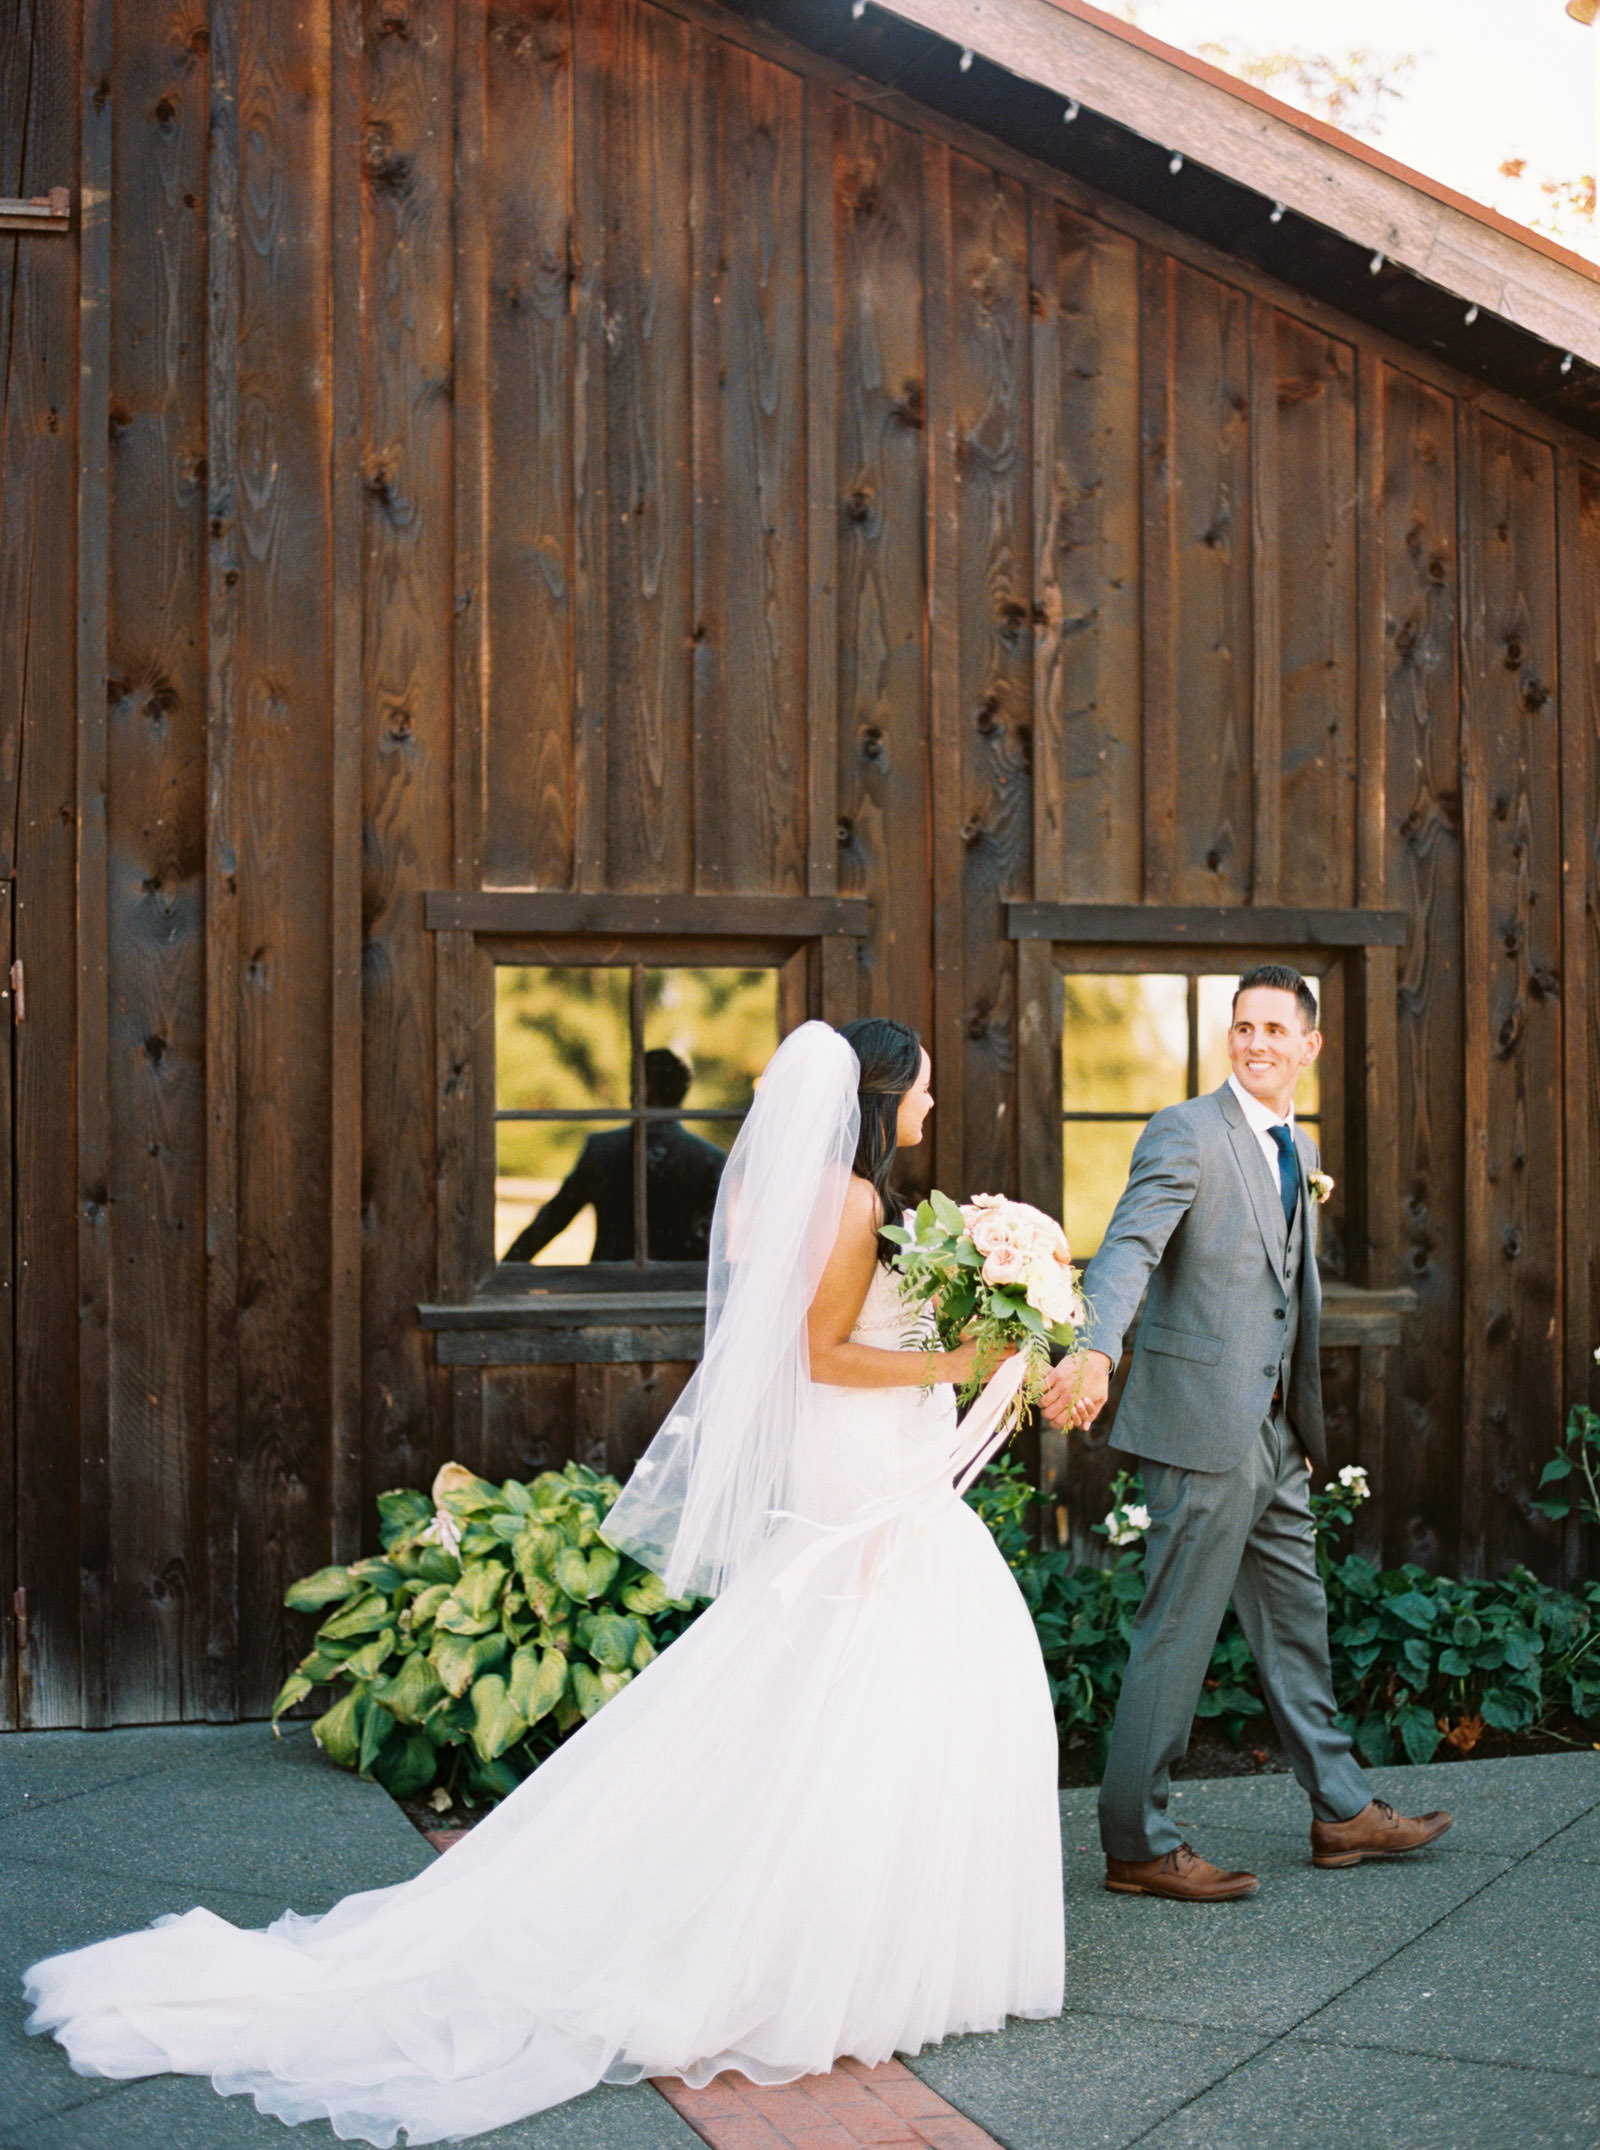 Elegant Bride and Groom portraits at a Fall Kelley Farms Wedding | Seattle Wedding Photographer Anna Peters